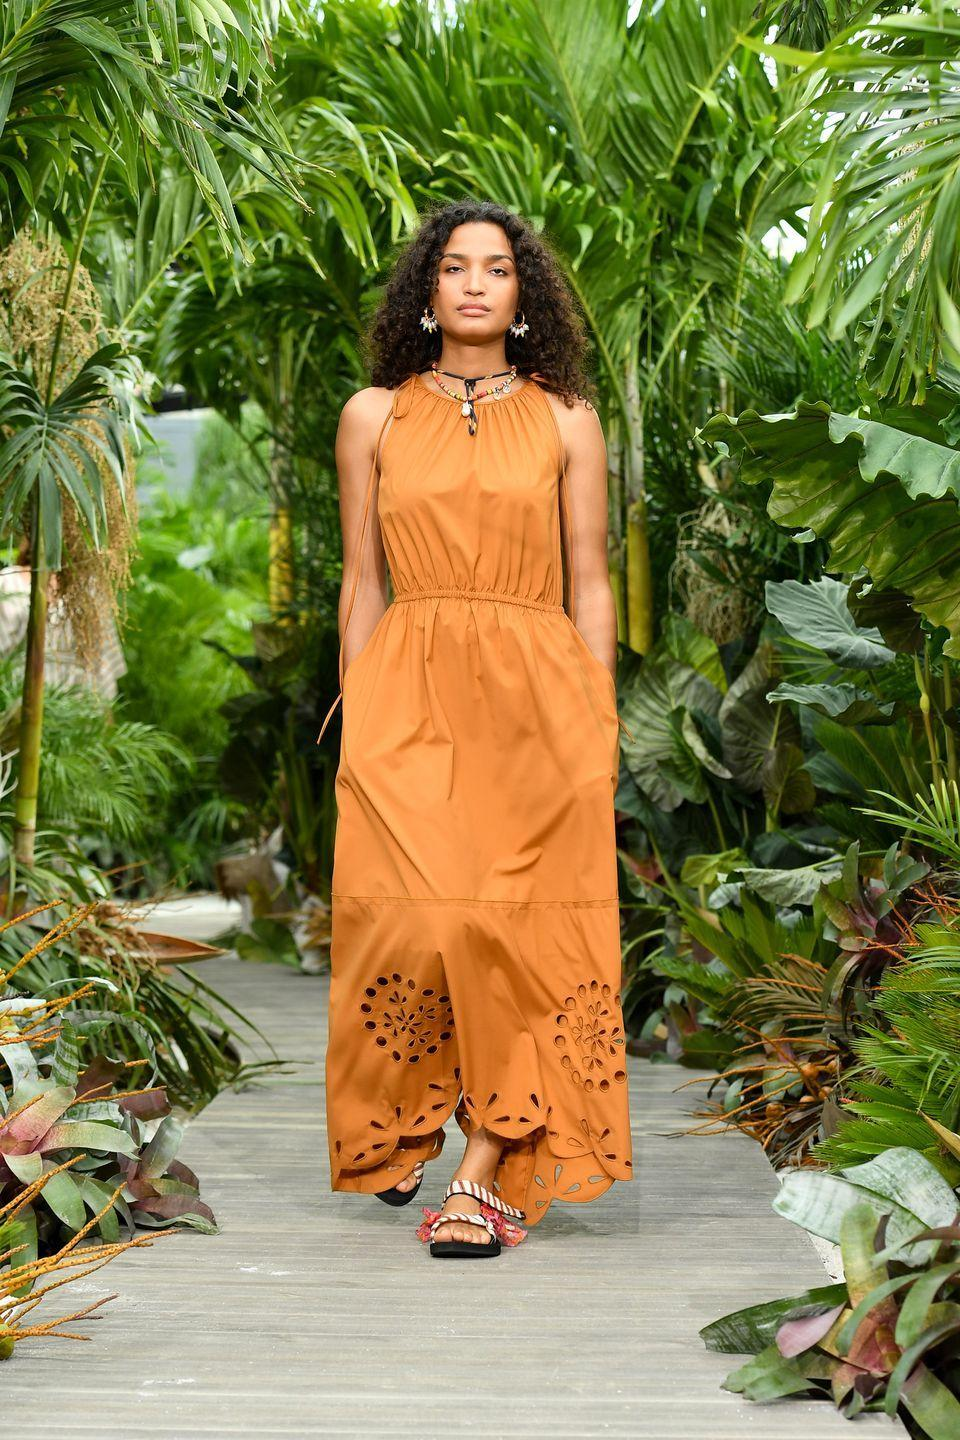 """<p>Jason Wu is one of the few designers who presented in-person for New York Fashion Week, keeping his show small and adhering to COVID-19 restrictions. Set against tropical foliage on a boardwalk-inspired runway that calls to mind one of Wu's favorite destinations, Tulum, Mexico, the designer showed a range of easy warm-weather ready maxi dresses and suiting in bold, bright shades of orange and yellow, offset with blues and greens. The cotton poplins and lightweight knits are part of his new contemporary-priced line, and serve as inviting propositions to wear on an escape from the city—or for a new life in closer proximity to nature. Wu took his bow wearing one of the<a href=""""https://www.distanceyourselffromhate.org/purchase"""" rel=""""nofollow noopener"""" target=""""_blank"""" data-ylk=""""slk:""""Distance Yourself From Hate"""" masks"""" class=""""link rapid-noclick-resp""""> """"Distance Yourself From Hate"""" masks</a> he designed in collaboration with Fabien Baron to benefit Gay Men's Health Crisis, an organization food and PPE to communities of color who have been disproportionately affected by the coronavirus pandemic and social injustice. —<em>Kerry Pieri</em></p>"""